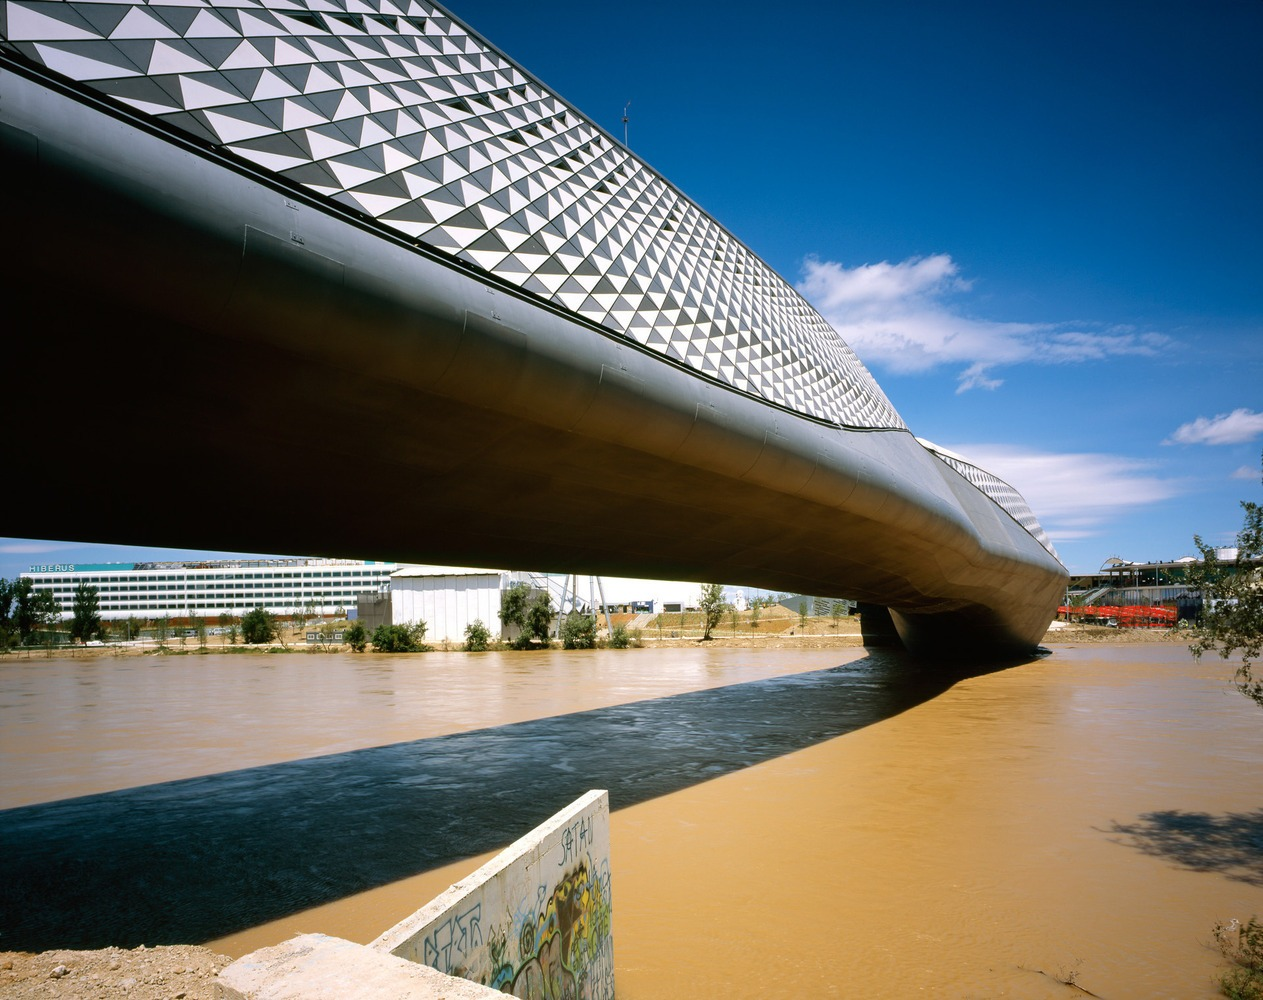 Bridge Pavilion in Zaragoza, Spain.